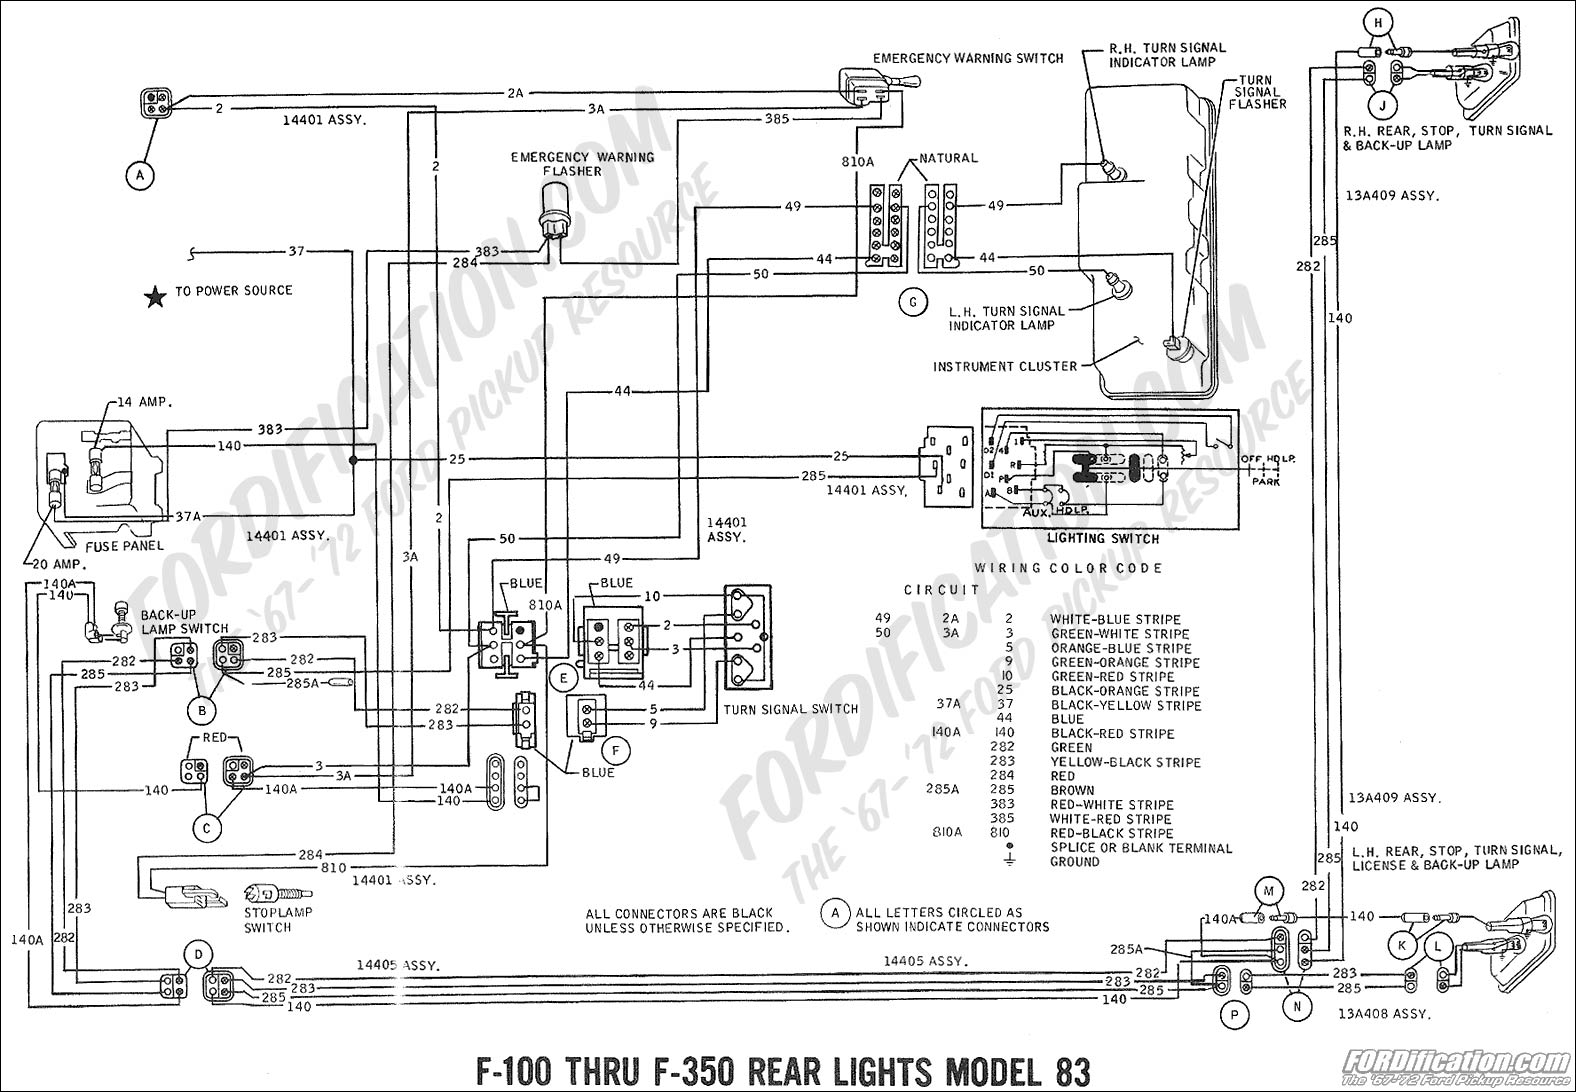 wiring_69rearlights mdl83 2 1977 ford f100 alternator wiring diagram wiring diagram and Ford Mirror Wiring Harness at n-0.co